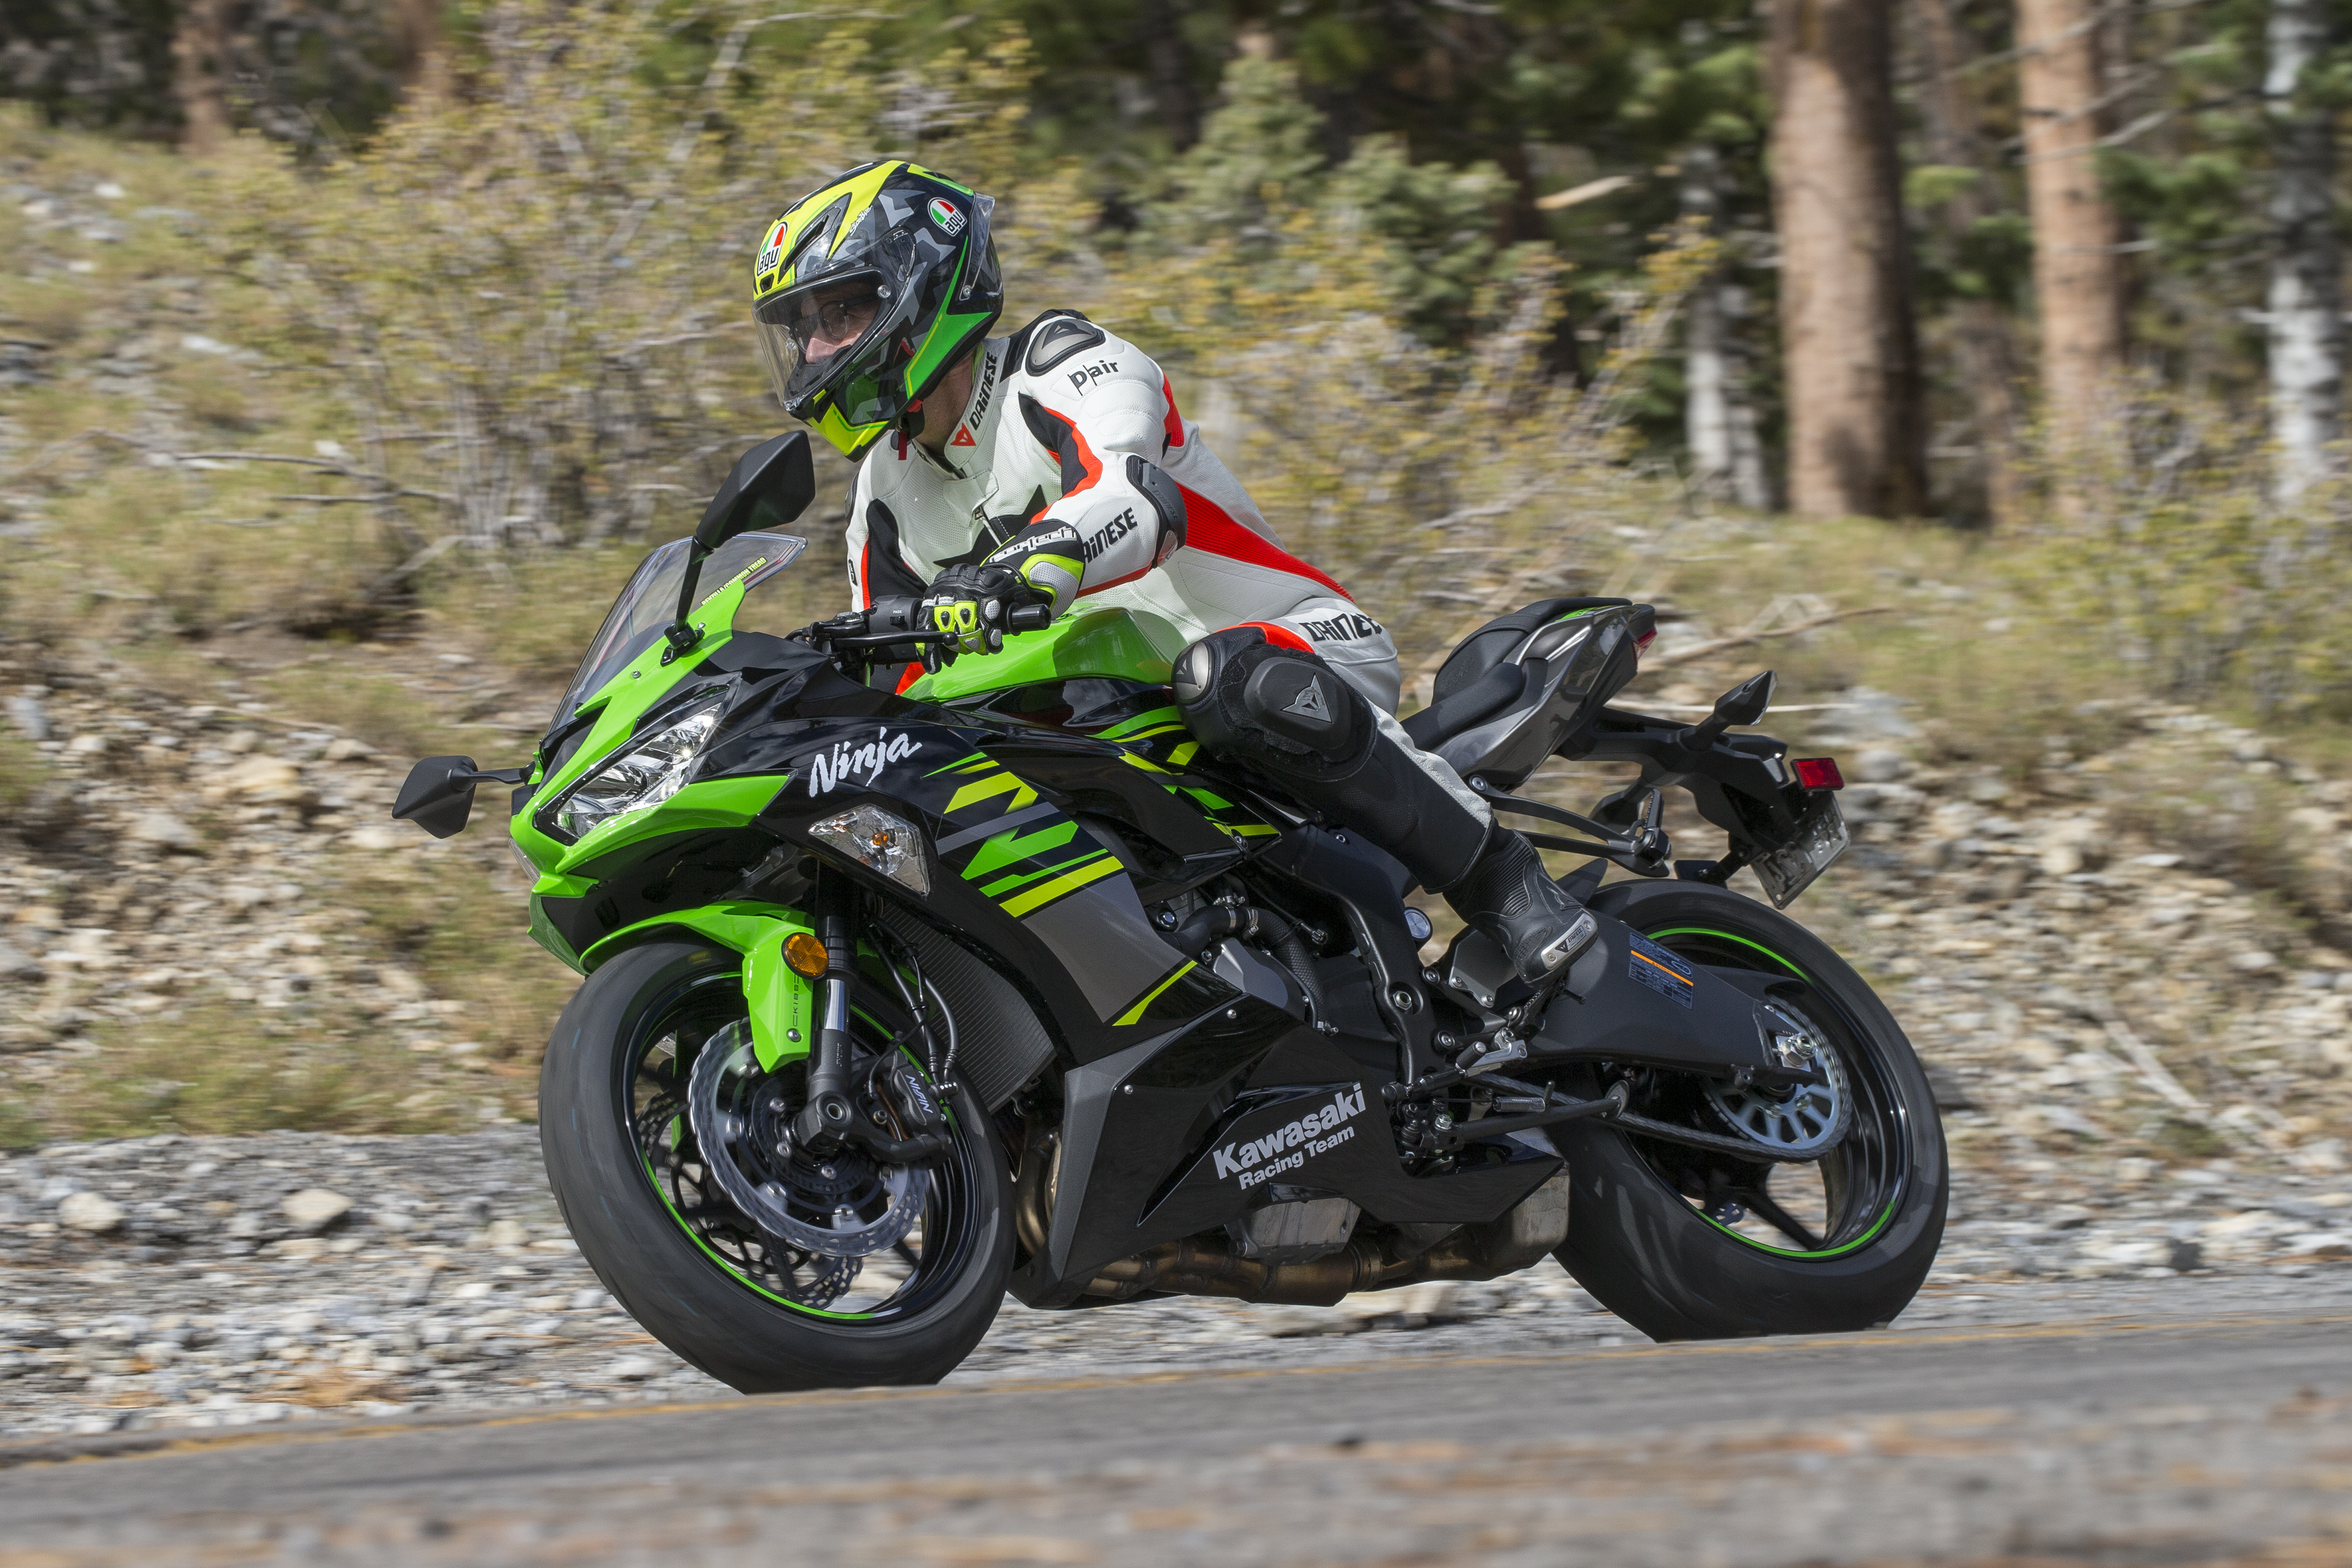 2019 Kawasaki Ninja Zx 6r First Ride Review Revzilla